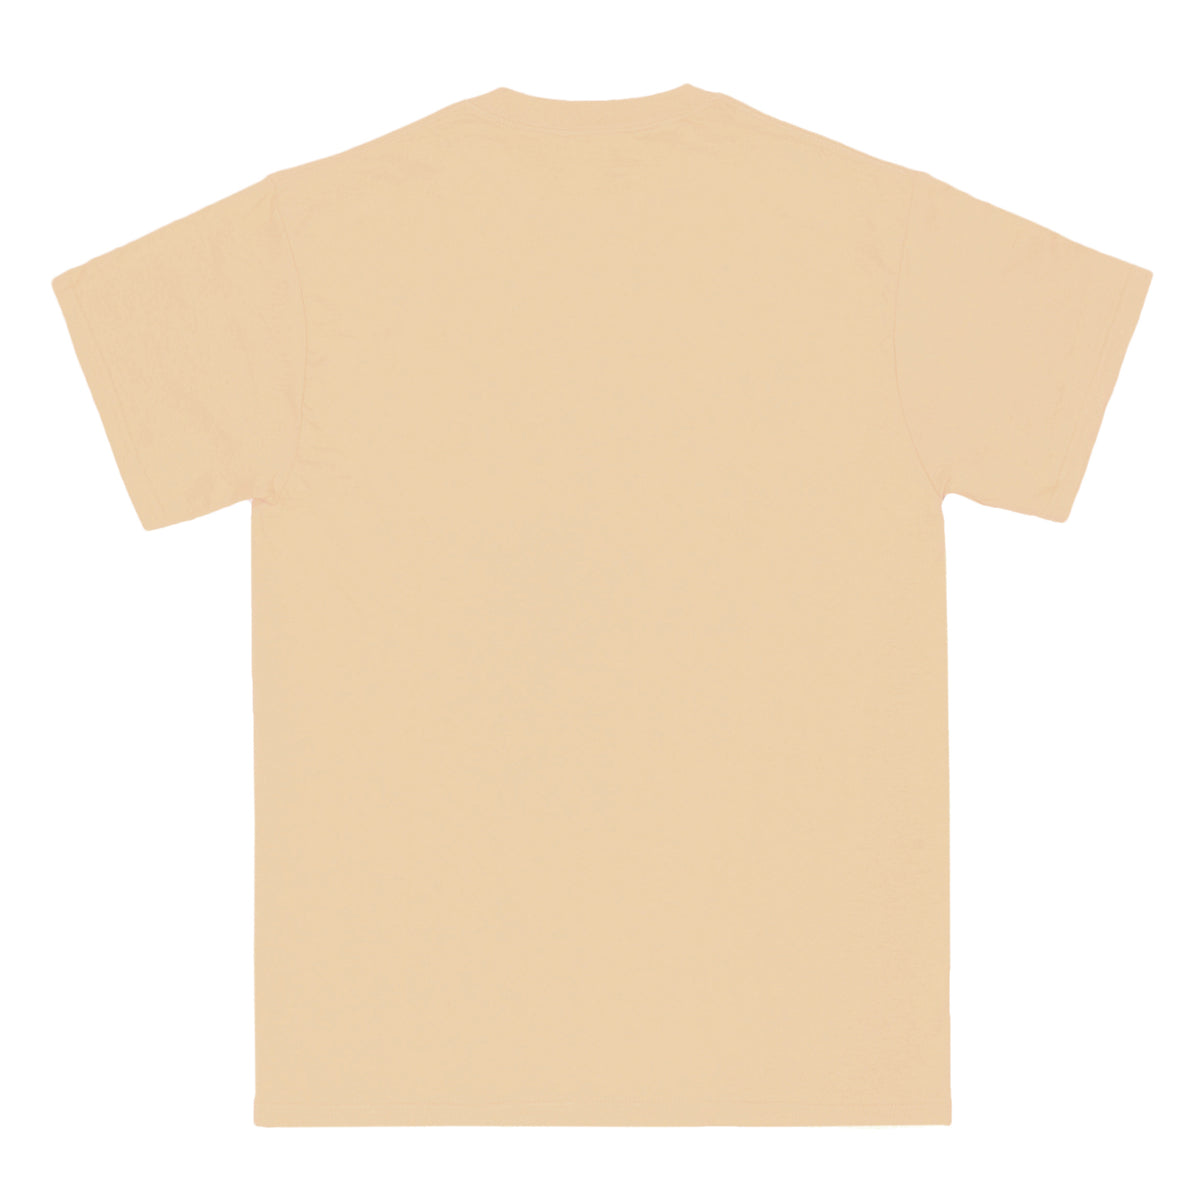 FAMILY & FRIENDS cream tee - RAVE skateboards